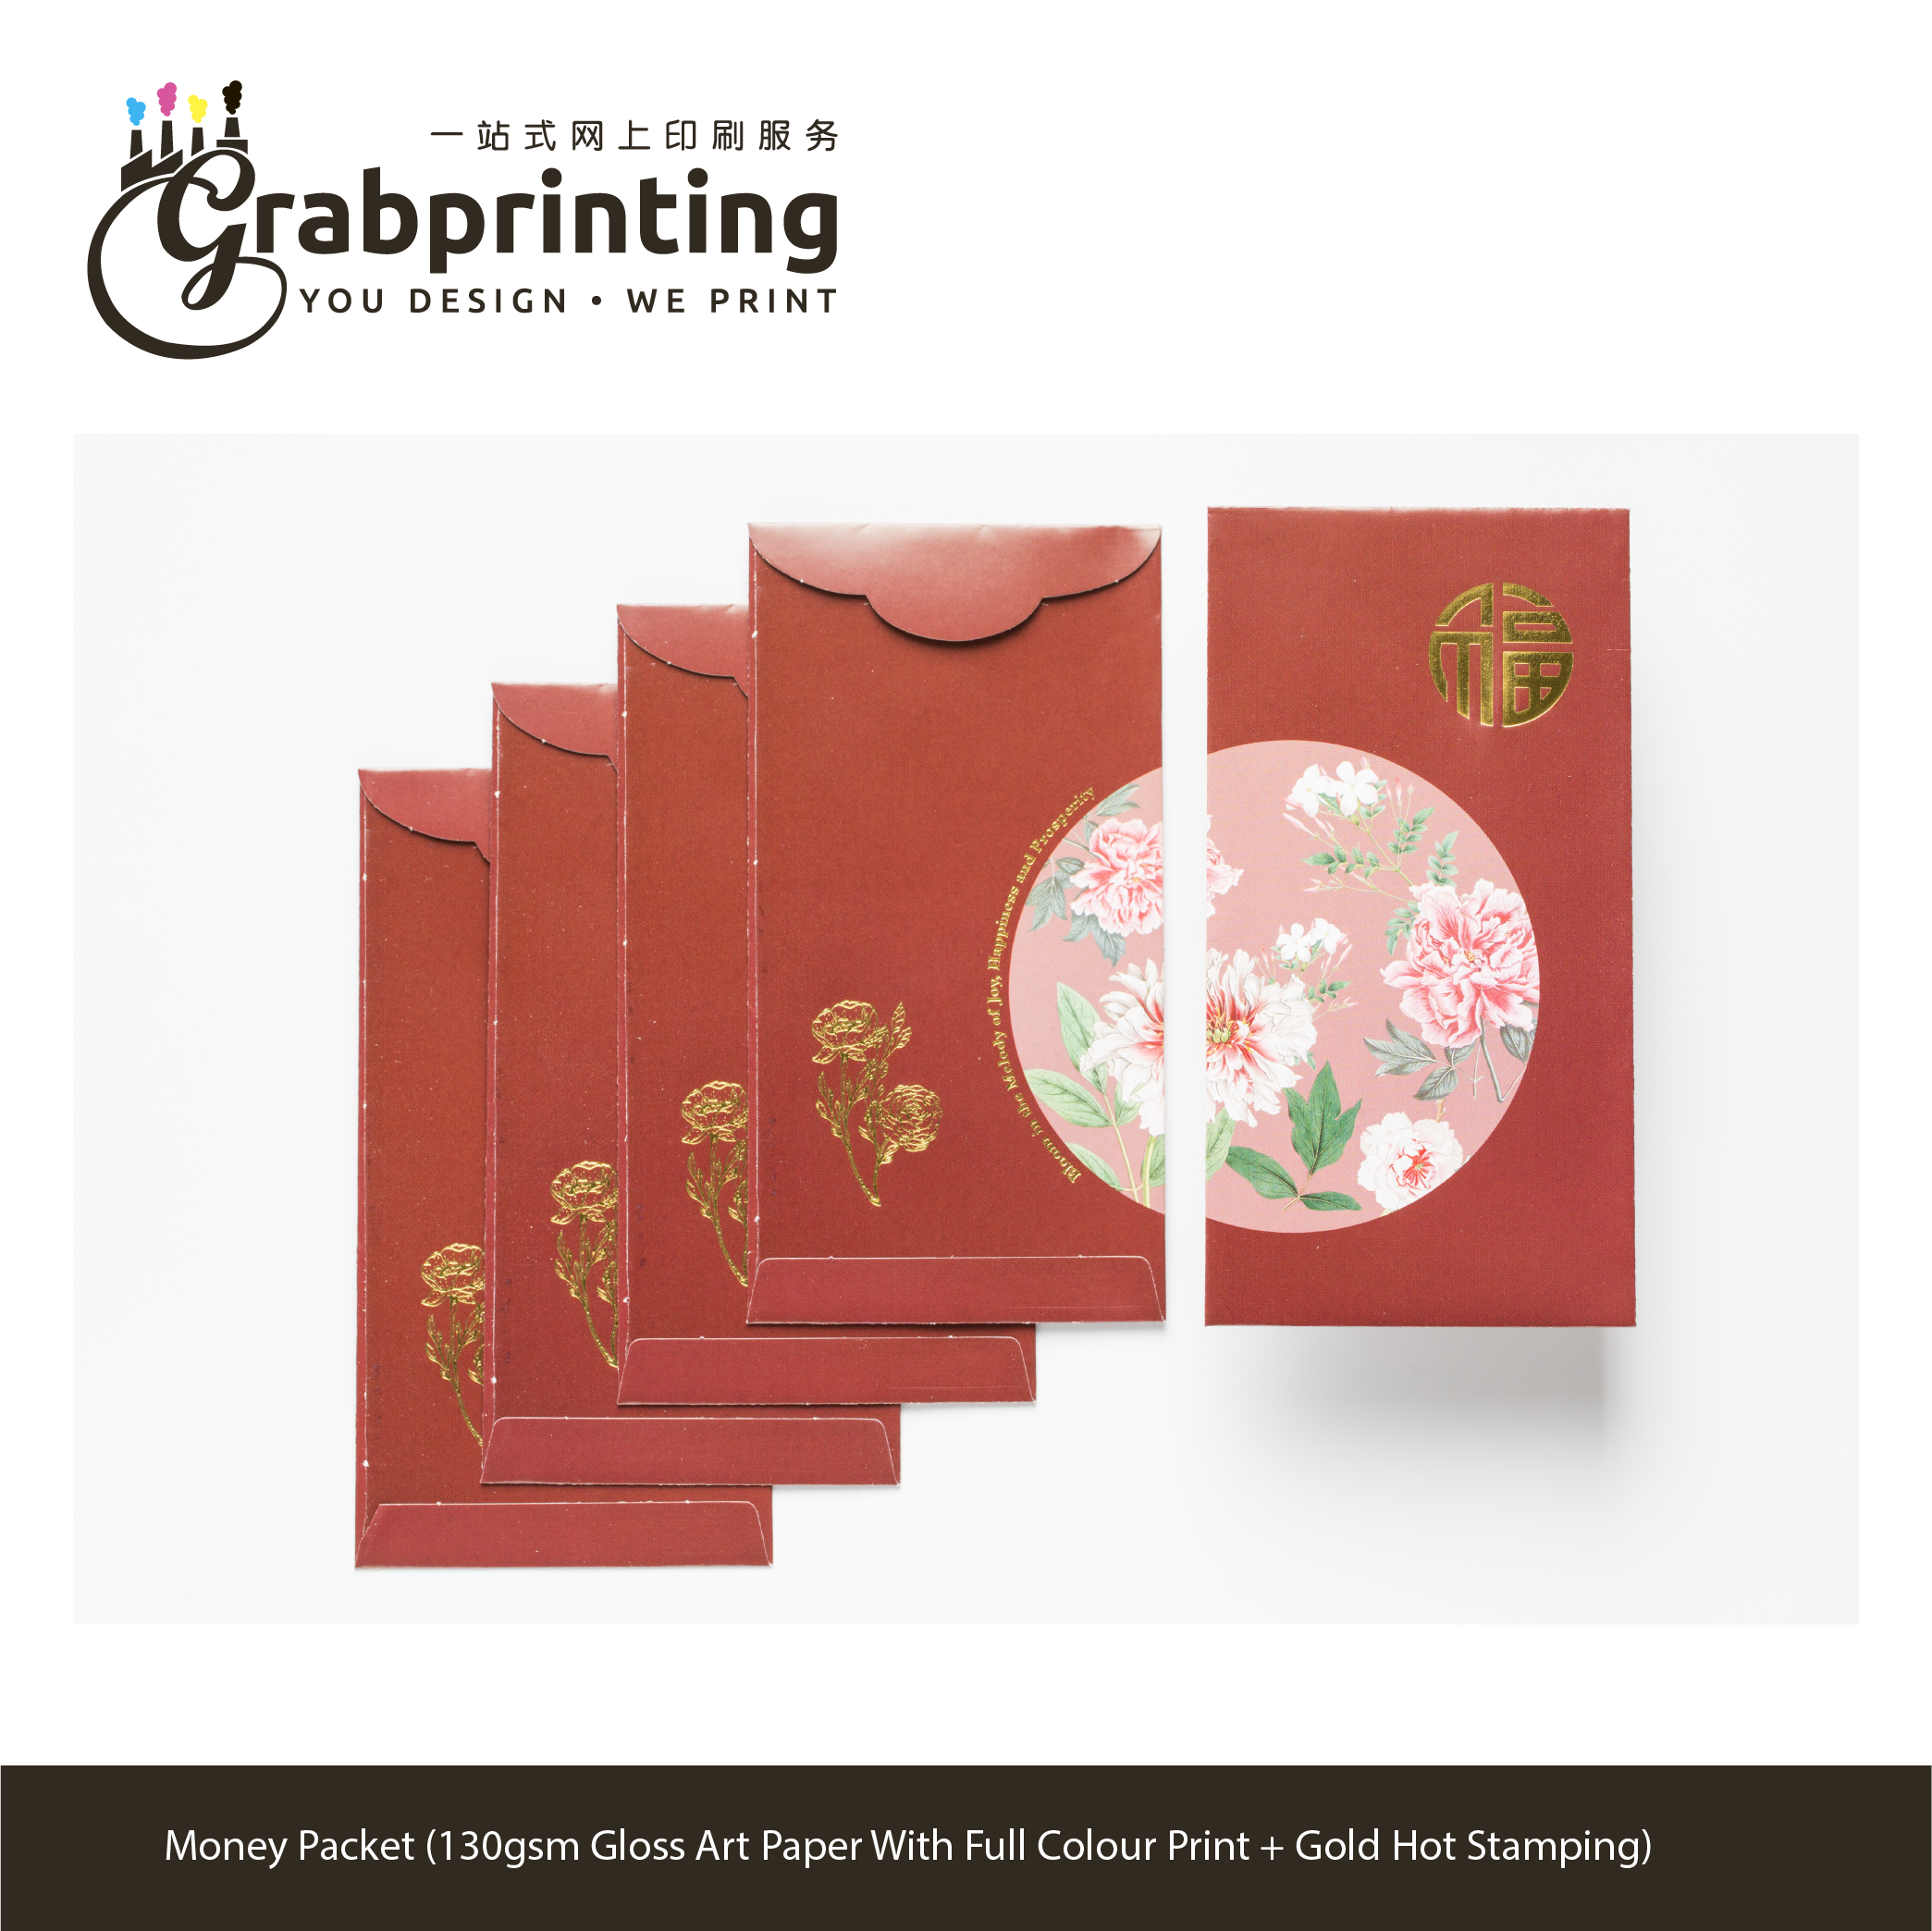 money packet printing Money Packet 130gsm Gloss Art Paper grabprinting 07 Money Packet 130gsm Gloss Art Paper With Full Colour Print Gold Hot Stamping 501px 501px